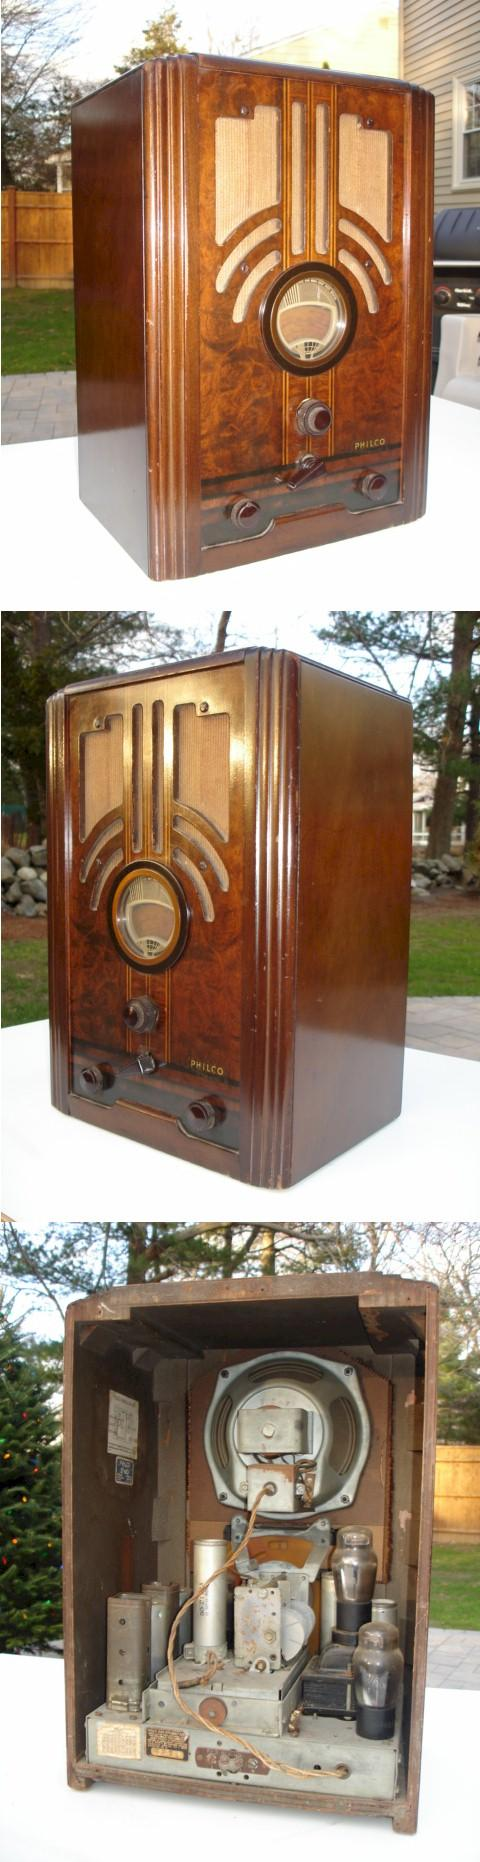 Philco 37-610 Tombstone (1937)